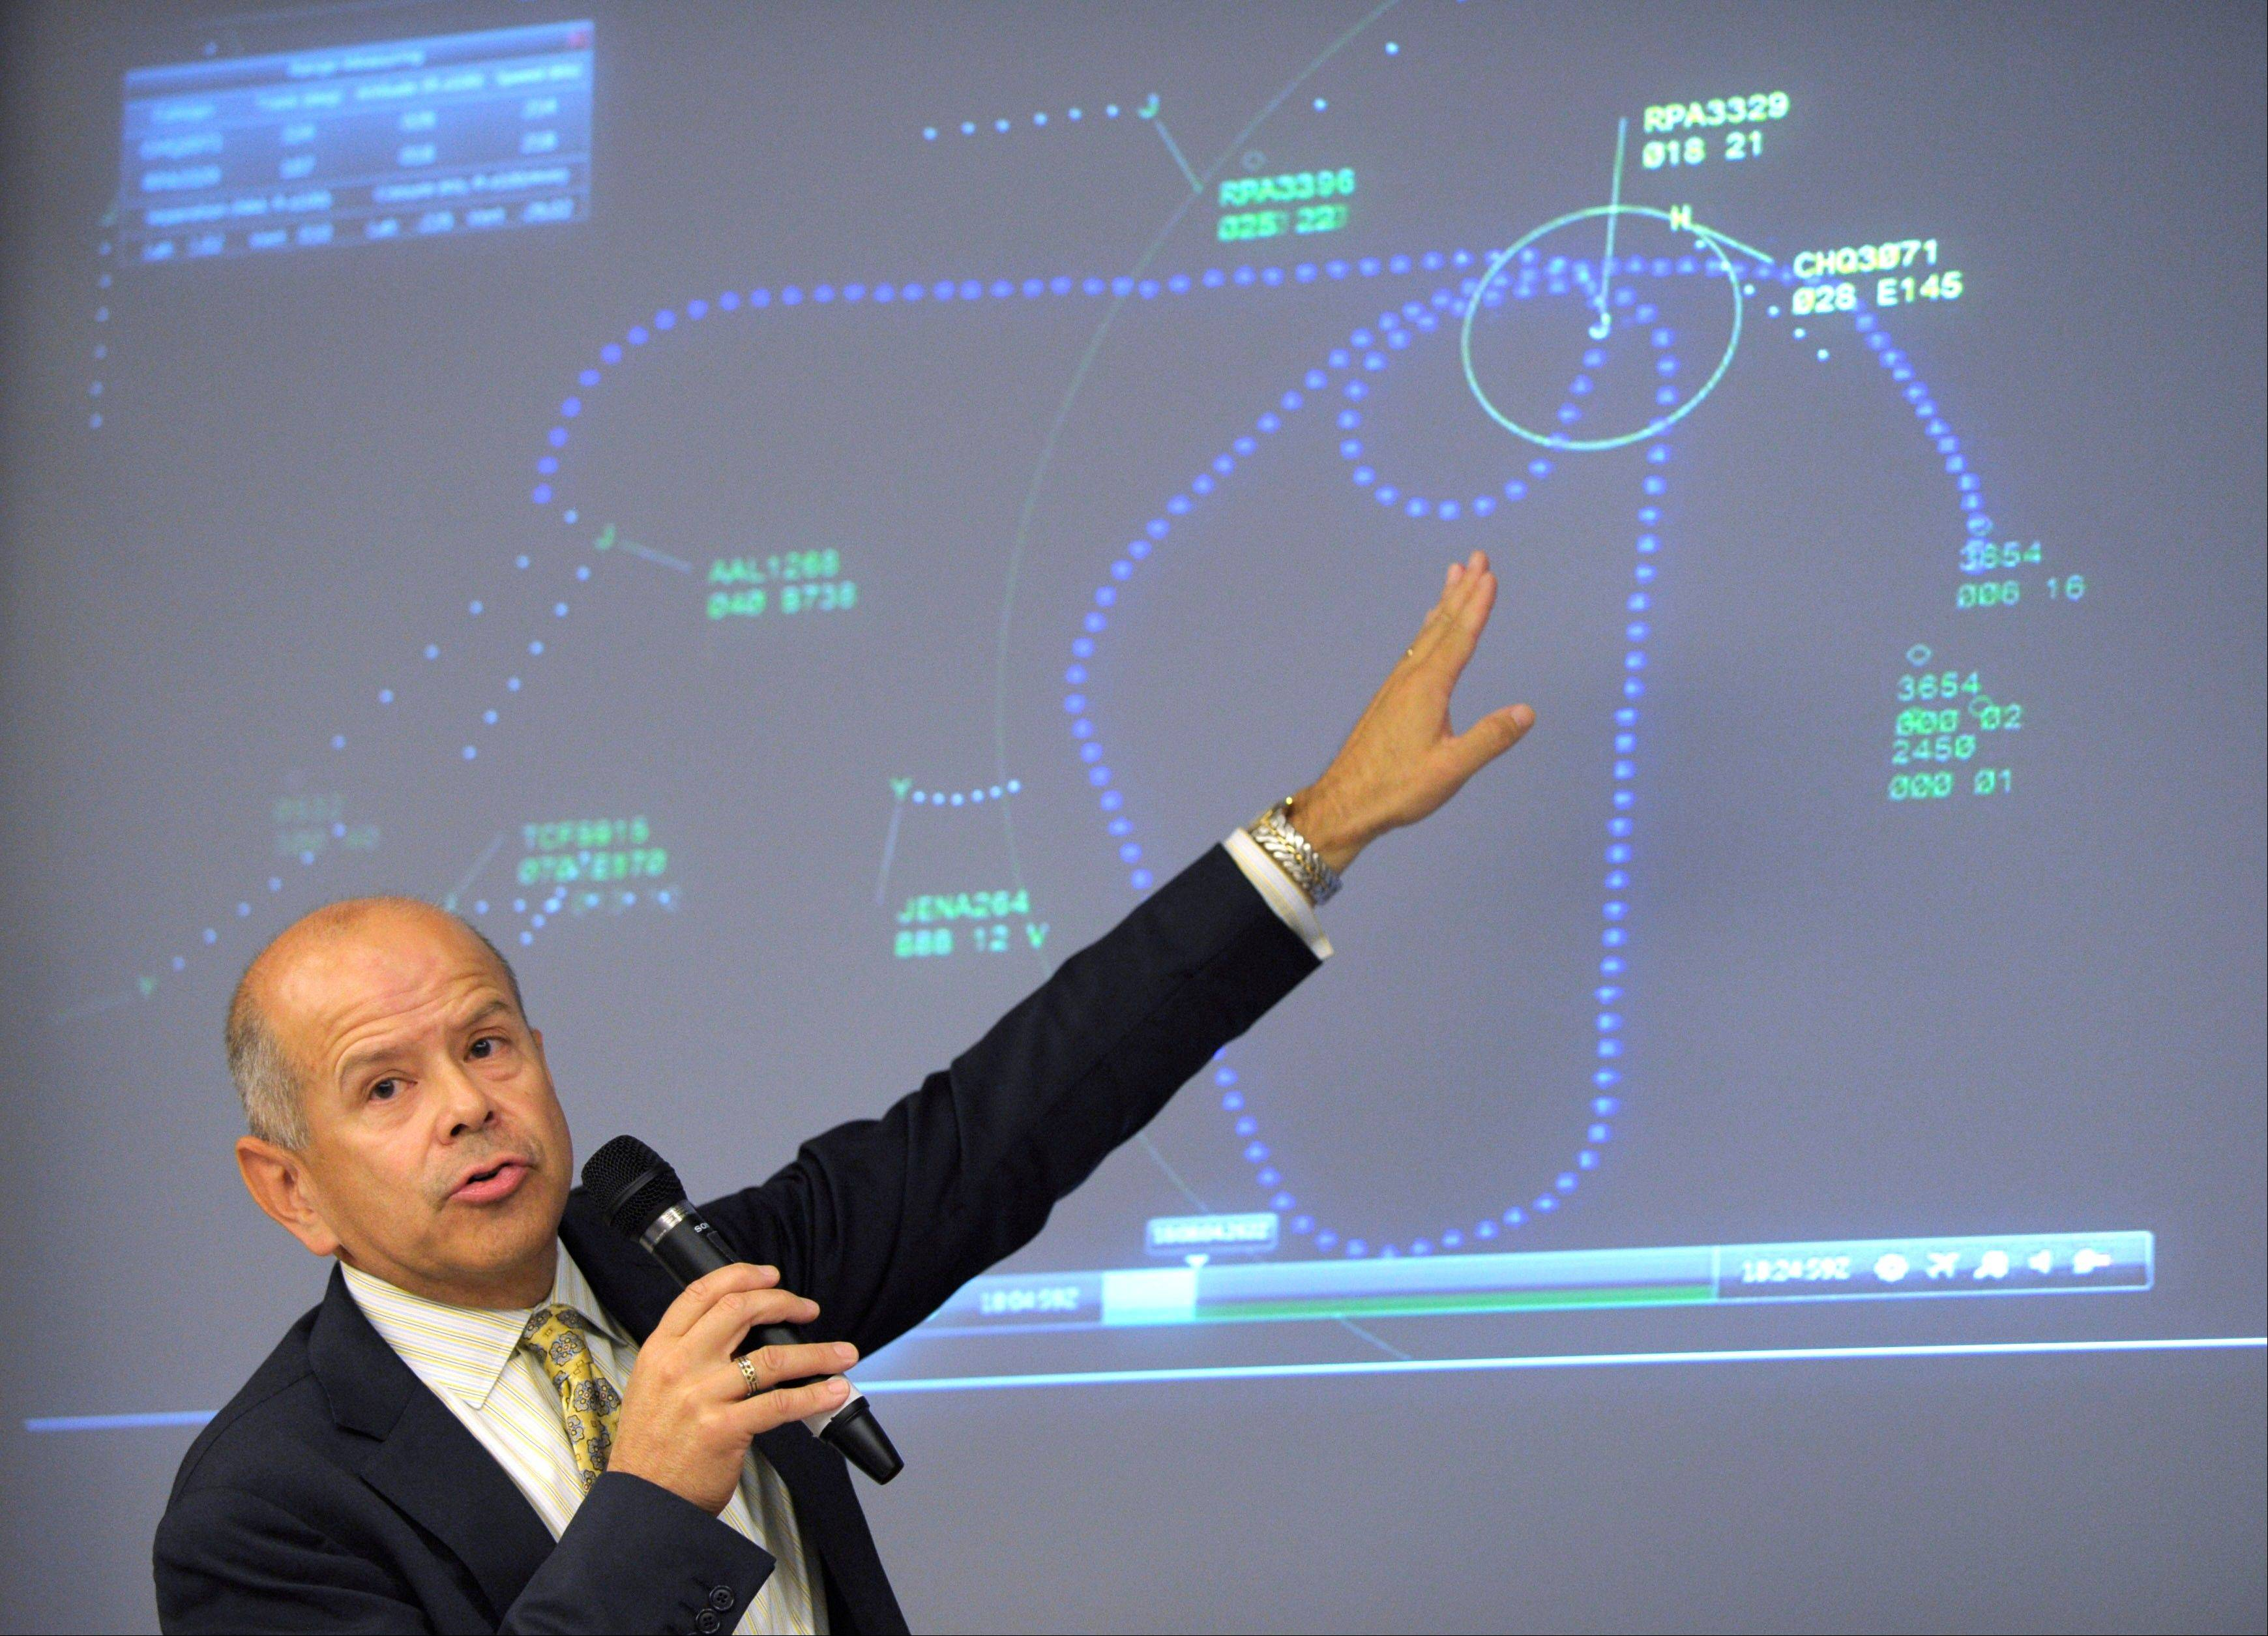 Acting Federal Aviation Administration Administrator Michael Huerta comments on a graphic of air traffic control during a news conference at the Transportation Department in Washington on Thursday. The news conference was held to answer question about three commuter jets that nearly collided at Reagan National Airport in Washington on Tuesday.